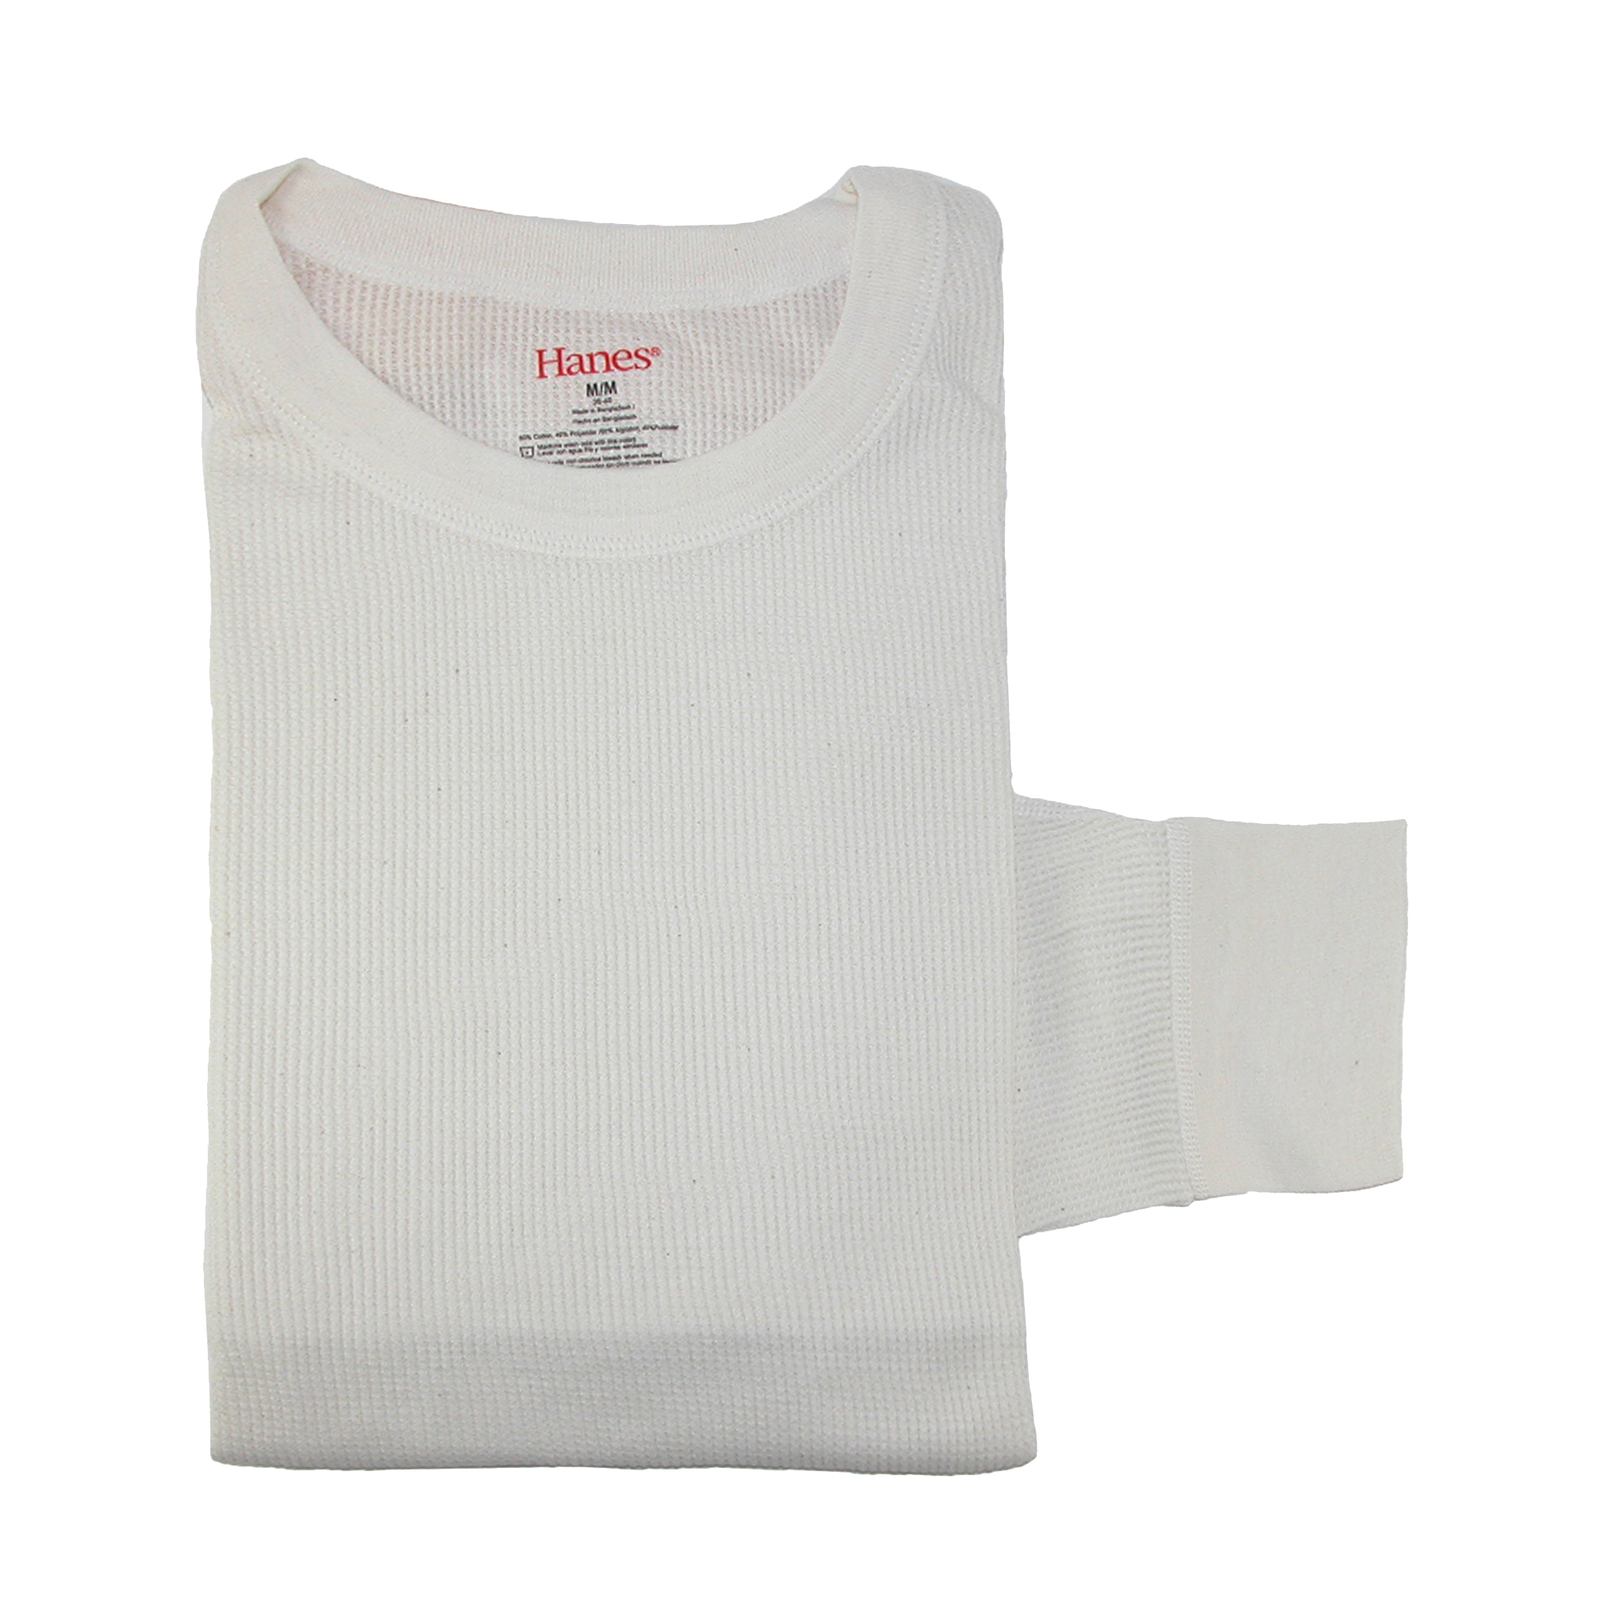 a95a670b49246 h m s Remaining. HANES Men s Thermal Crew Neck Cotton Long Sleeve Top ...